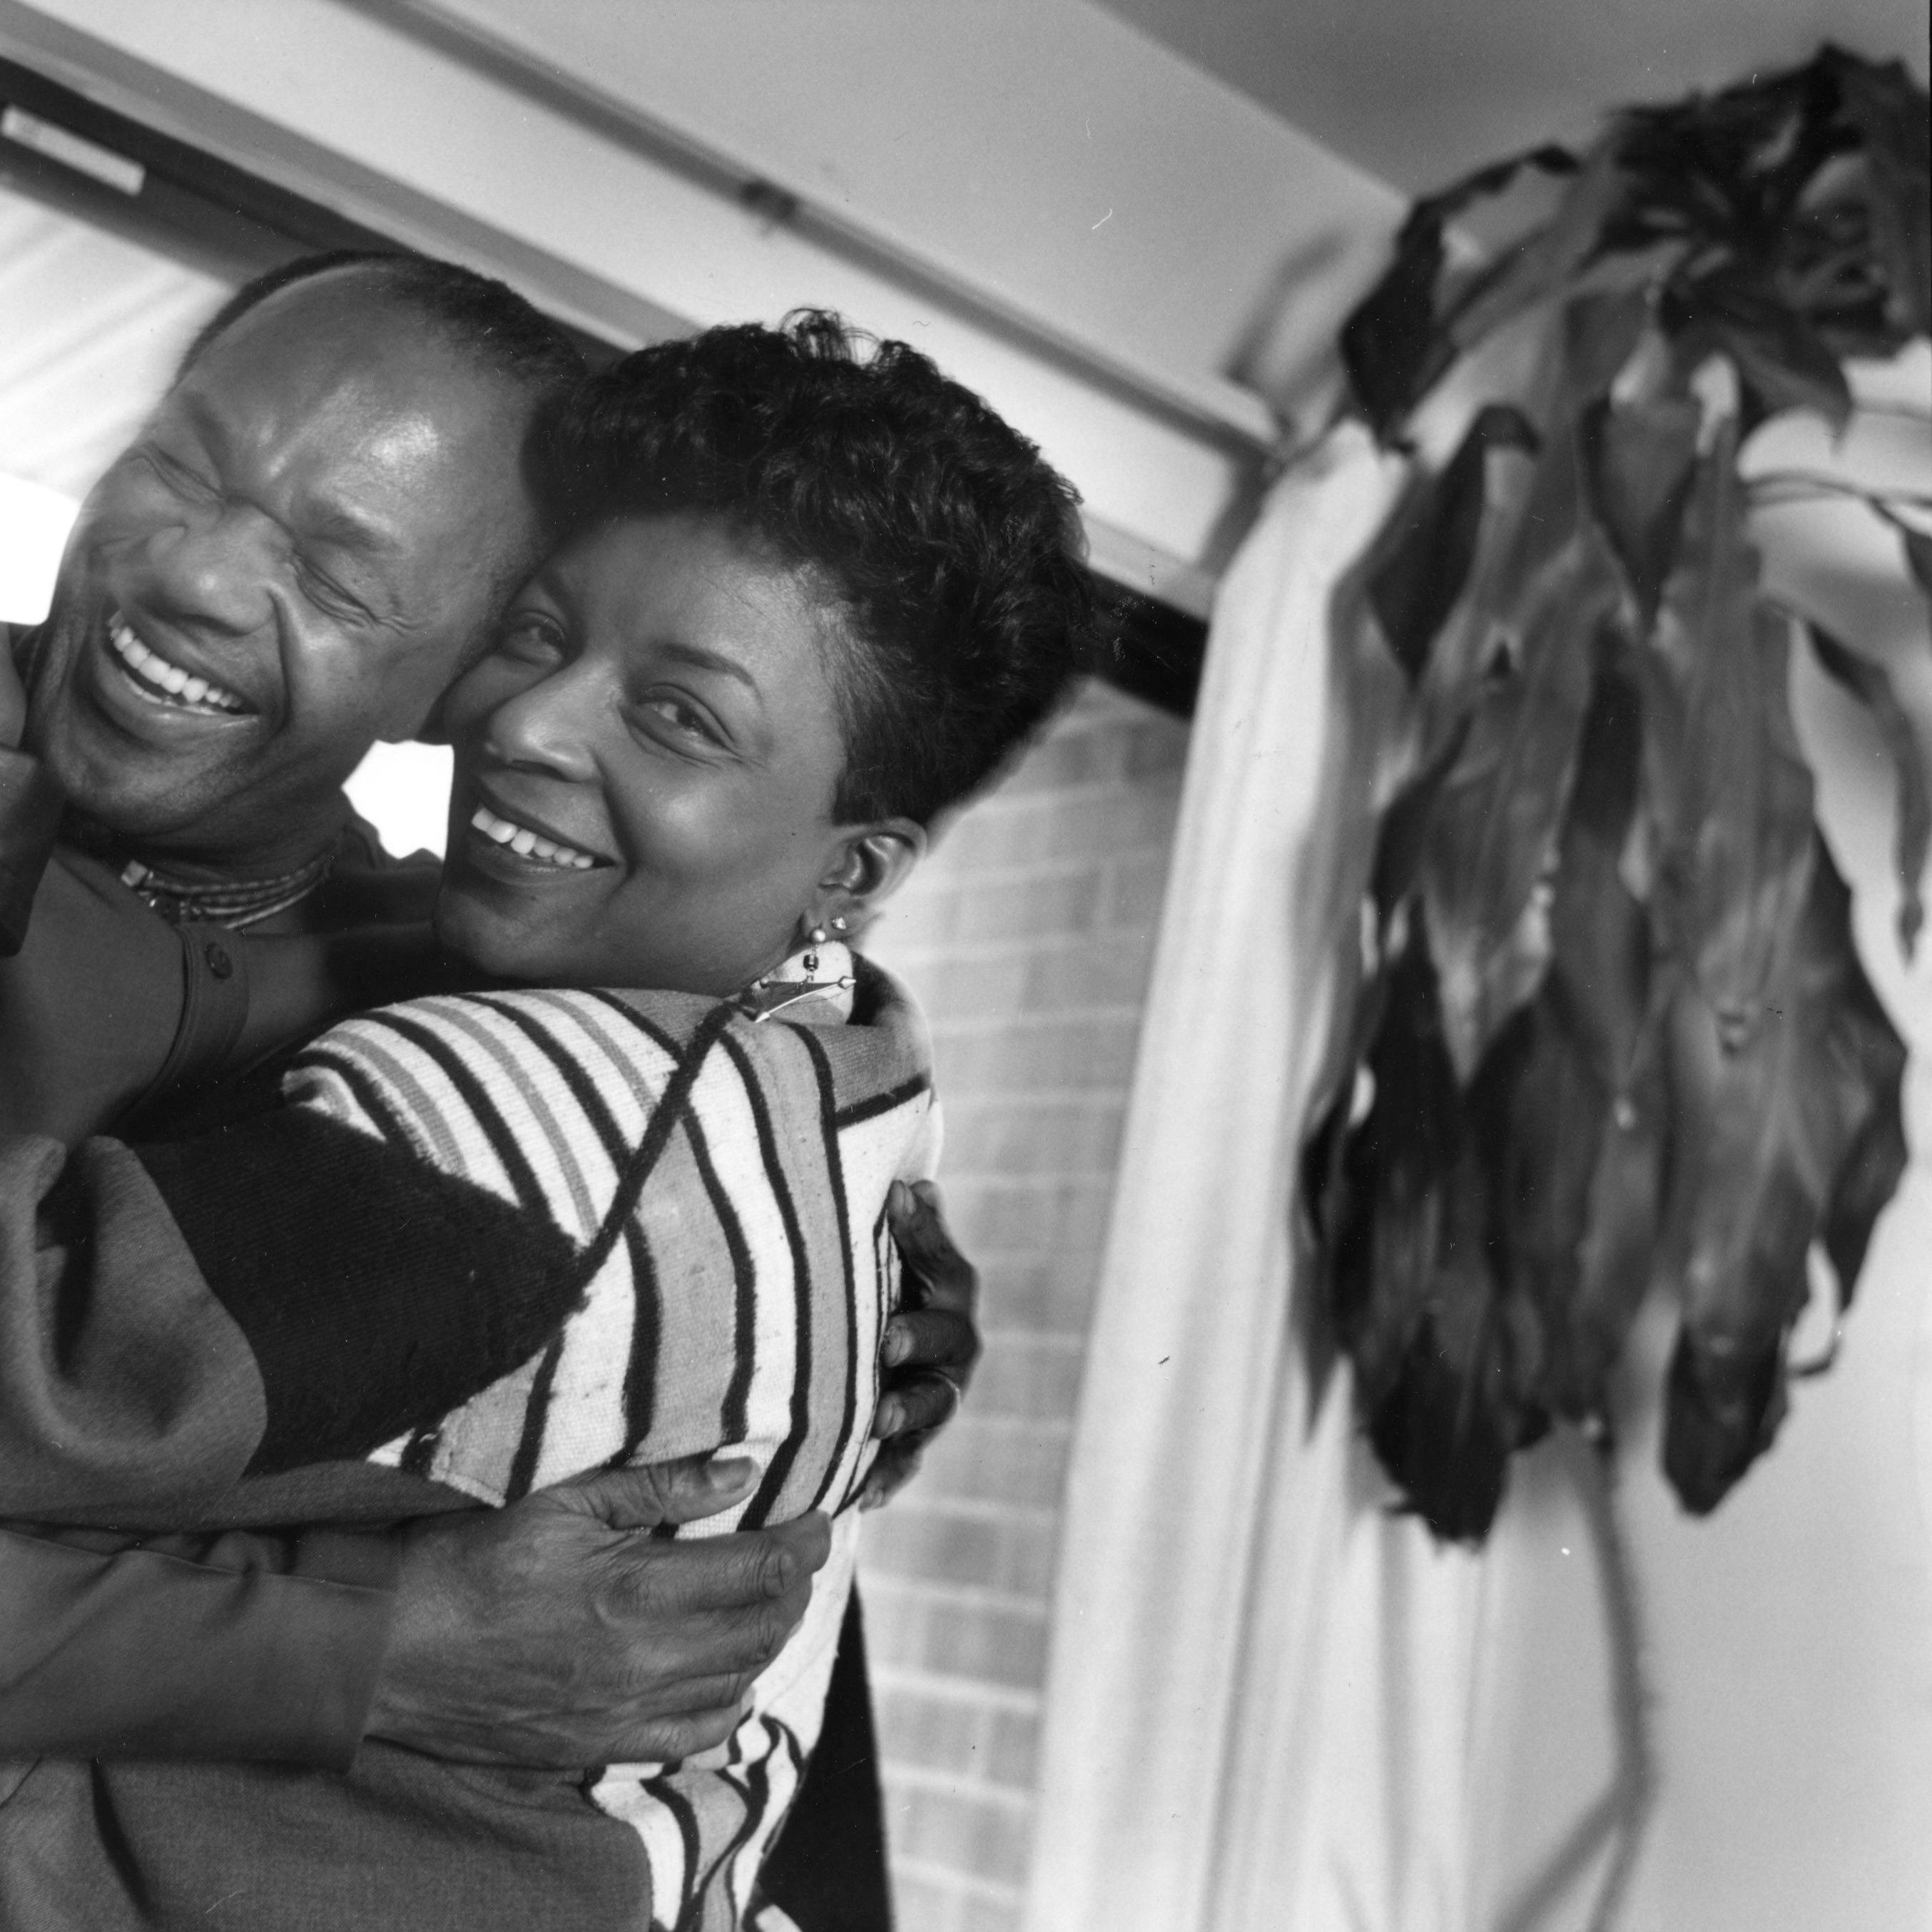 Another Fresh Start - Although estranged at the time of his death, Barry and new wife Cora Masters Barry were very happy on this day in March 1994 as they prepared to move into their new home.   (Photo: Keith Jenkins / The Washington Post)